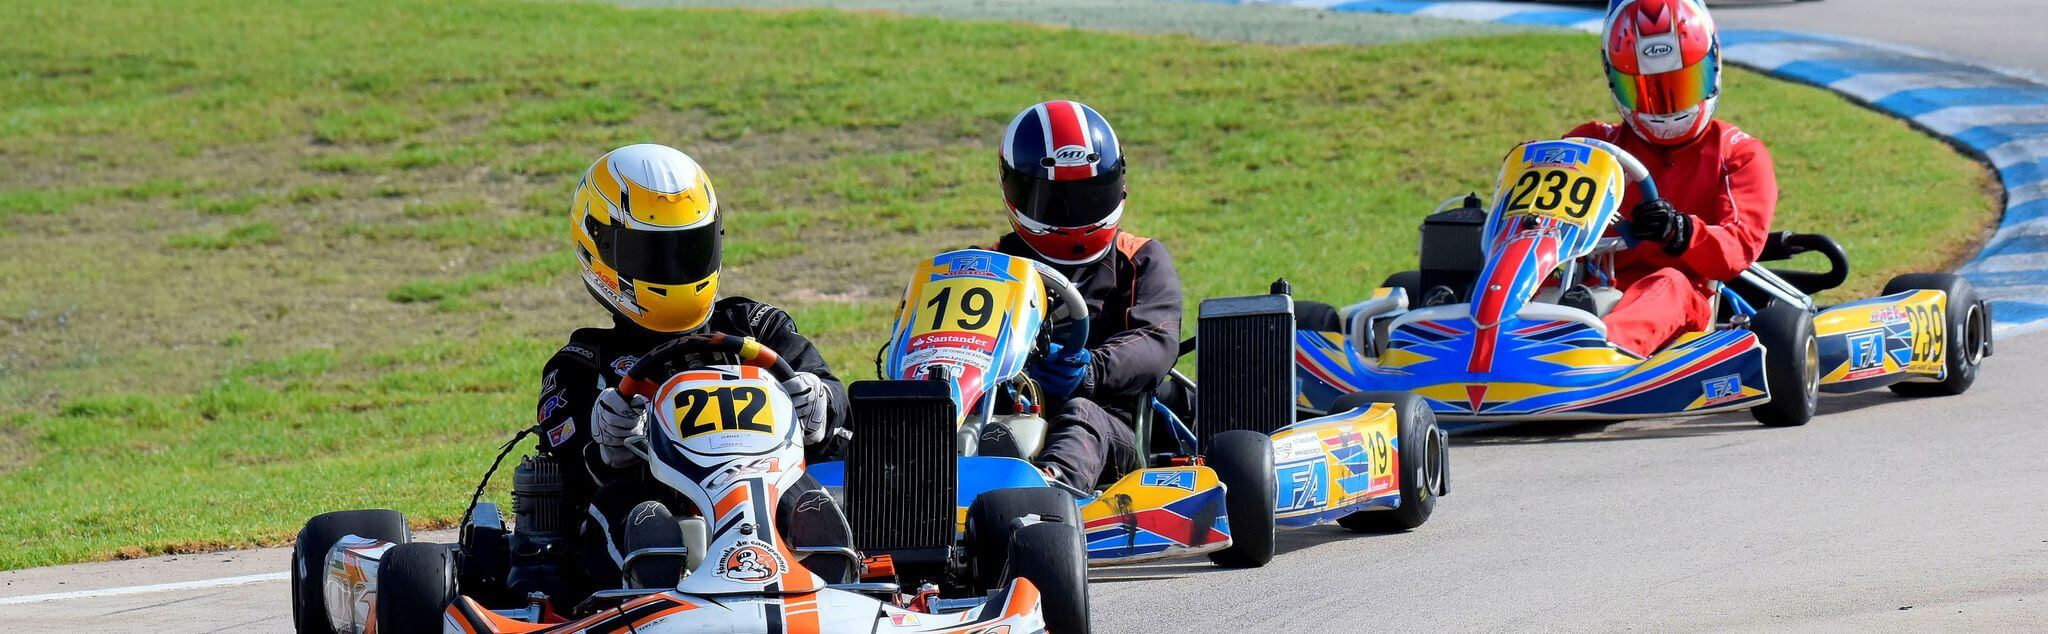 Karting dans Seine-Saint-Denis